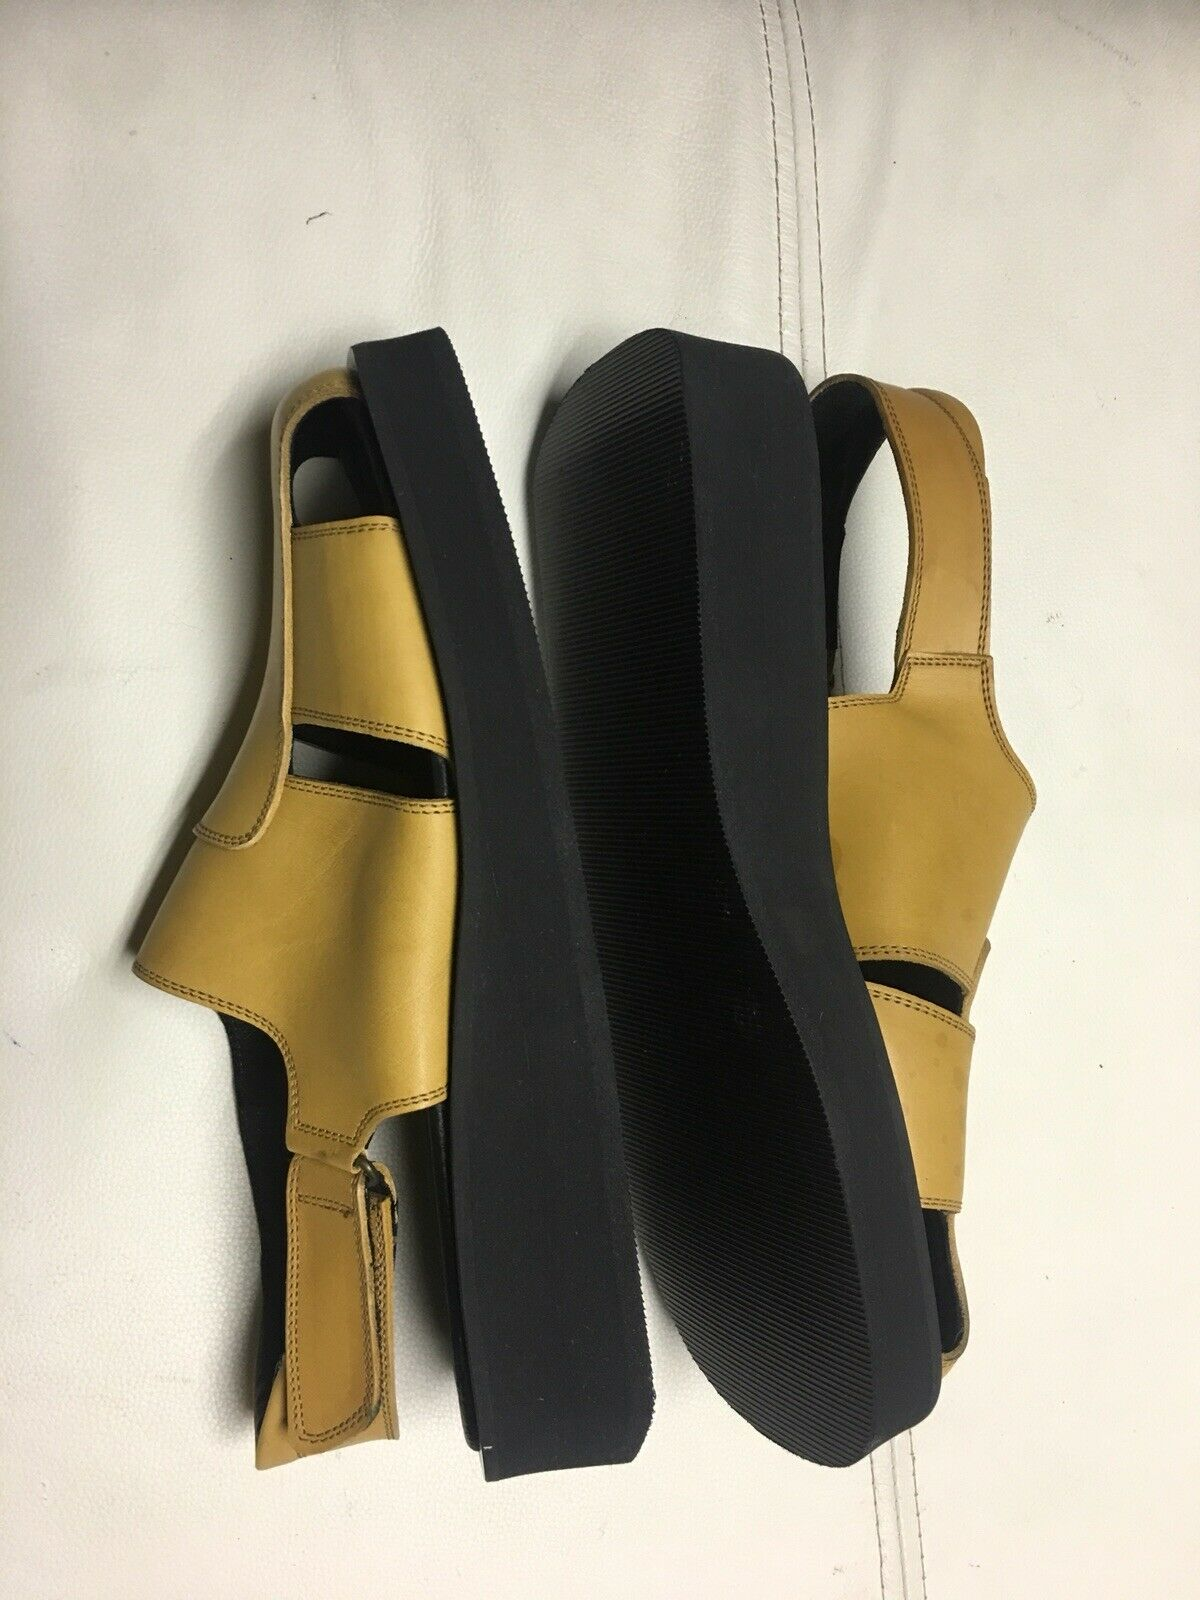 More Or Less 2000 Revival Sandals Yellow Sz 43 Made In .